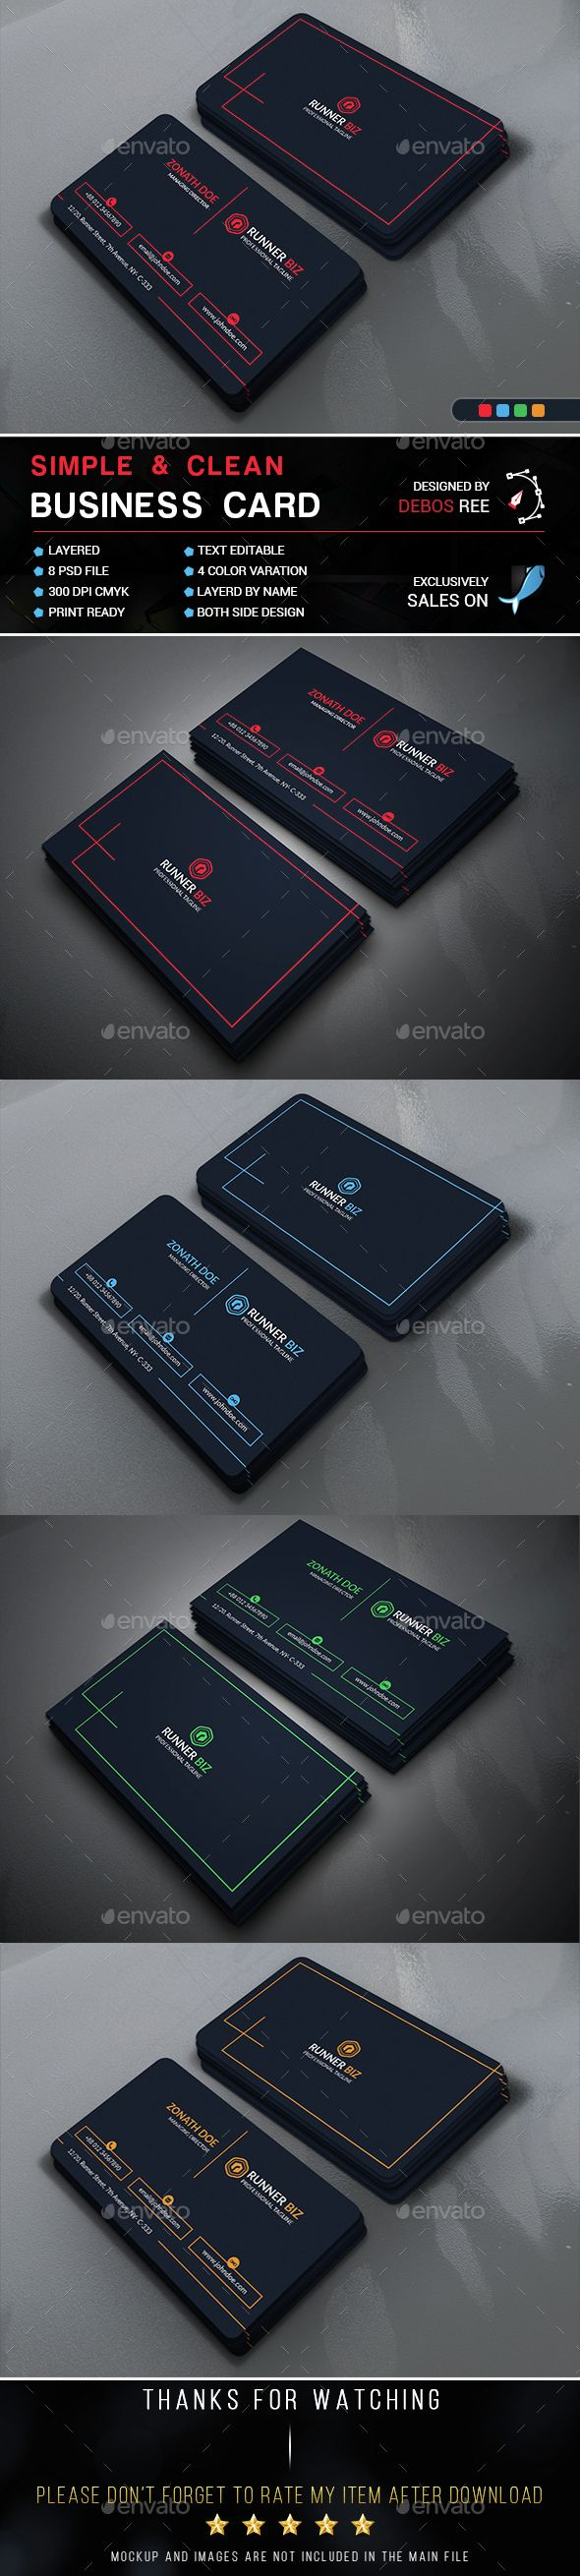 Best 25 cleaning business cards ideas on pinterest business best 25 cleaning business cards ideas on pinterest business card design free business card design and modern business cards baanklon Gallery